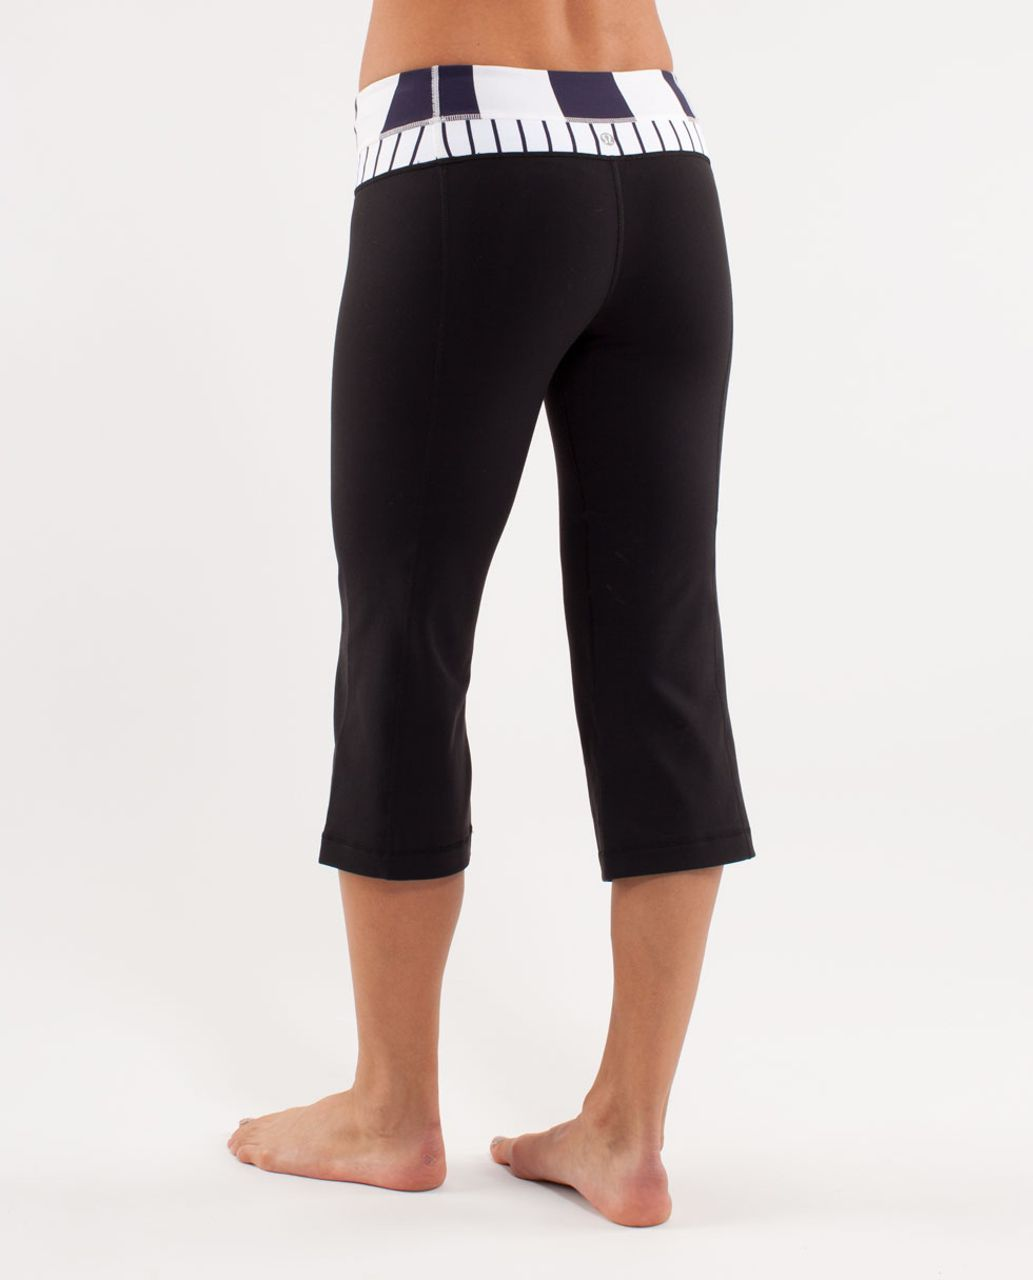 Lululemon Groove Crop - Black /  Wide Bold Stripe White Deep Indigo /  Quiet Stripe White Deep Indigo